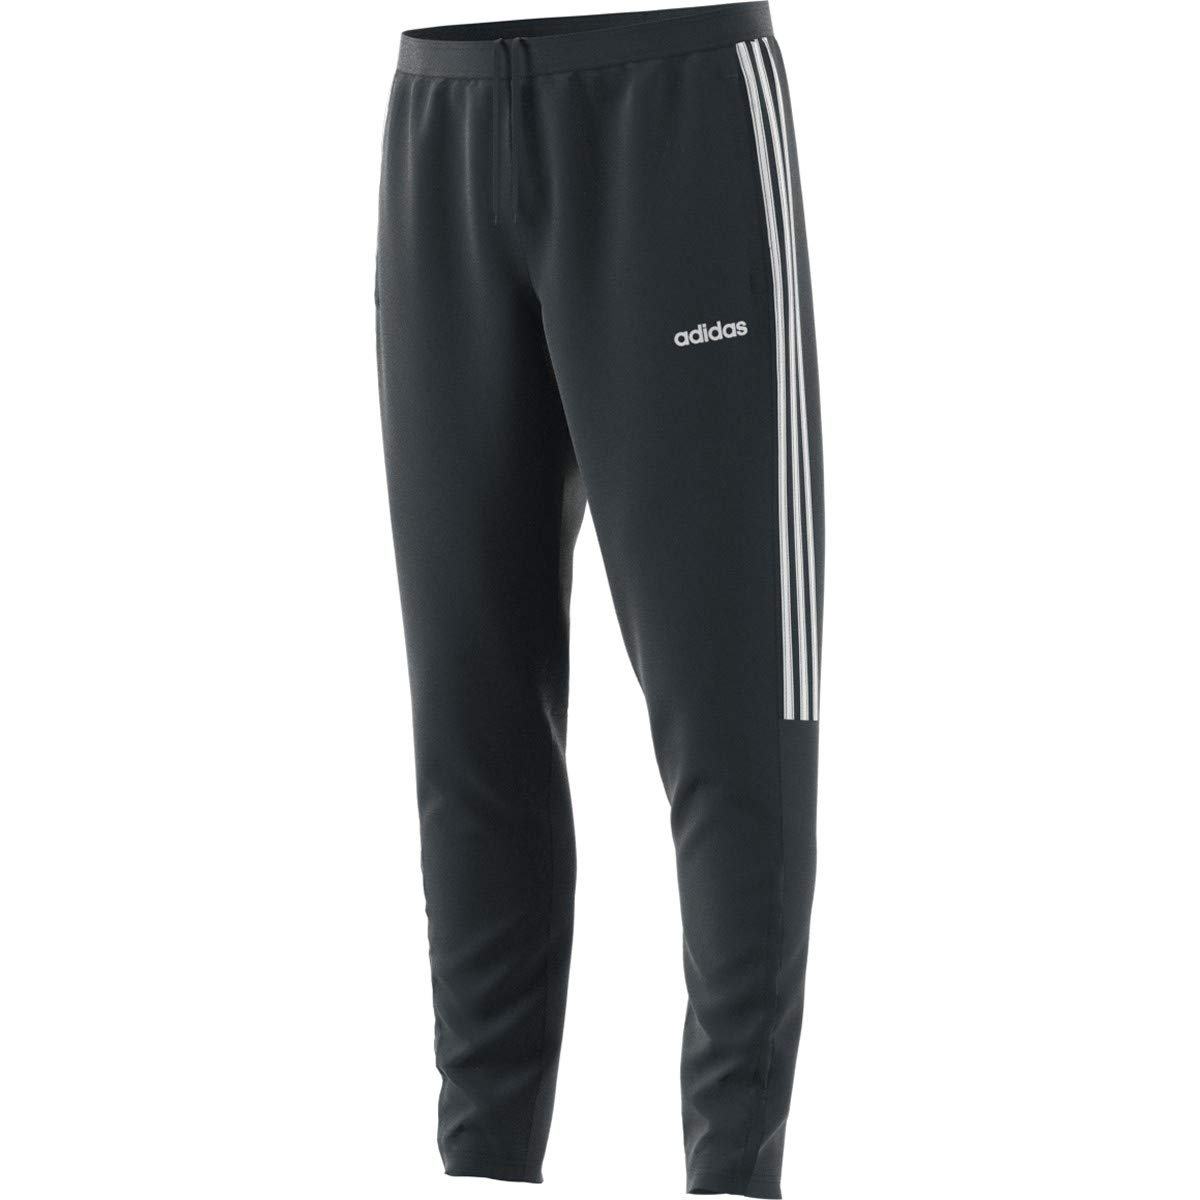 adidas Men's Sereno19 Training Pants, Dark Grey/White, Large by adidas